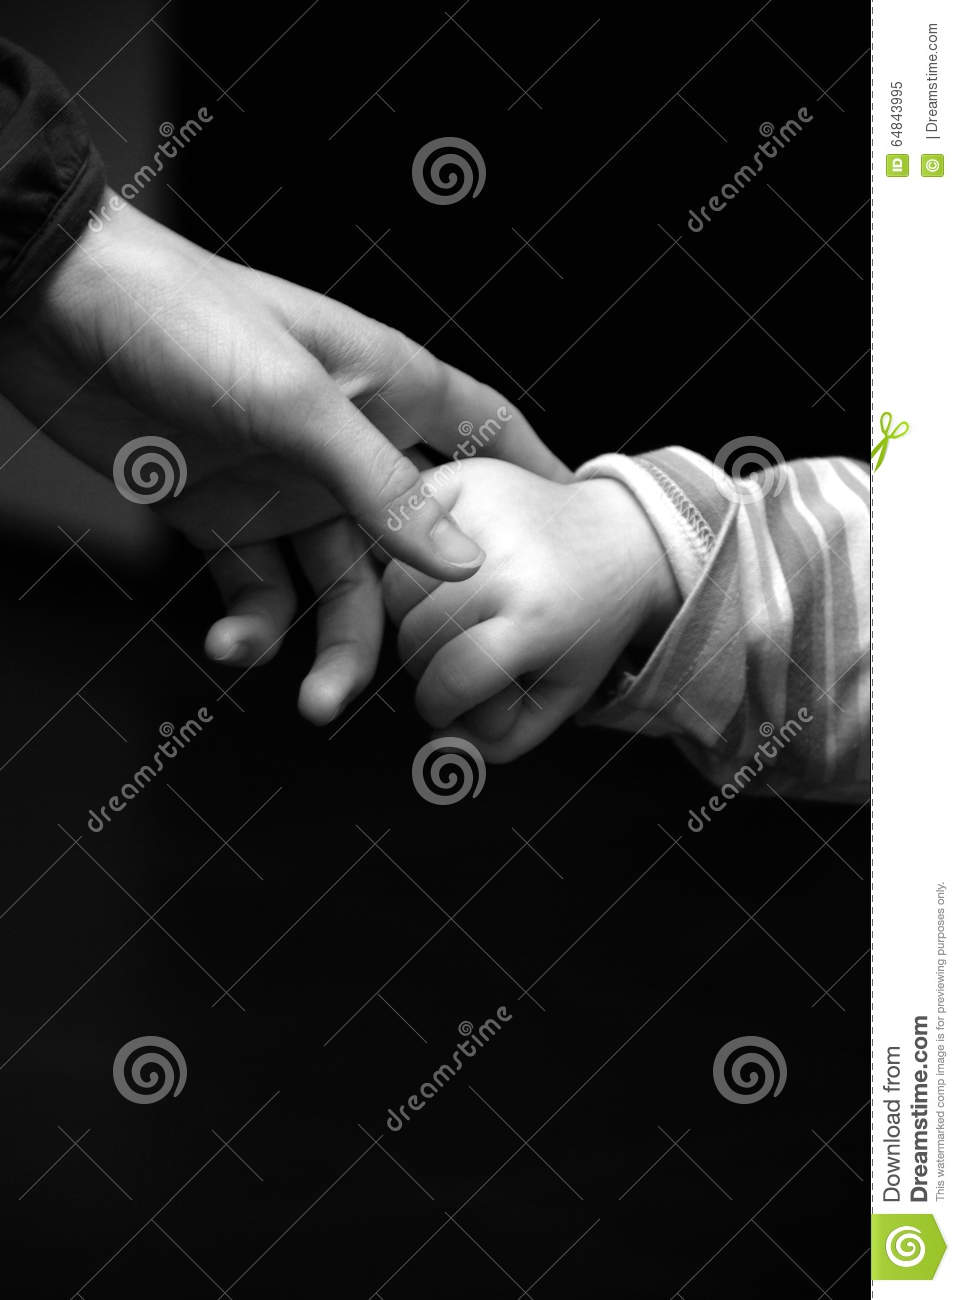 Mother and child holding hands in black and white